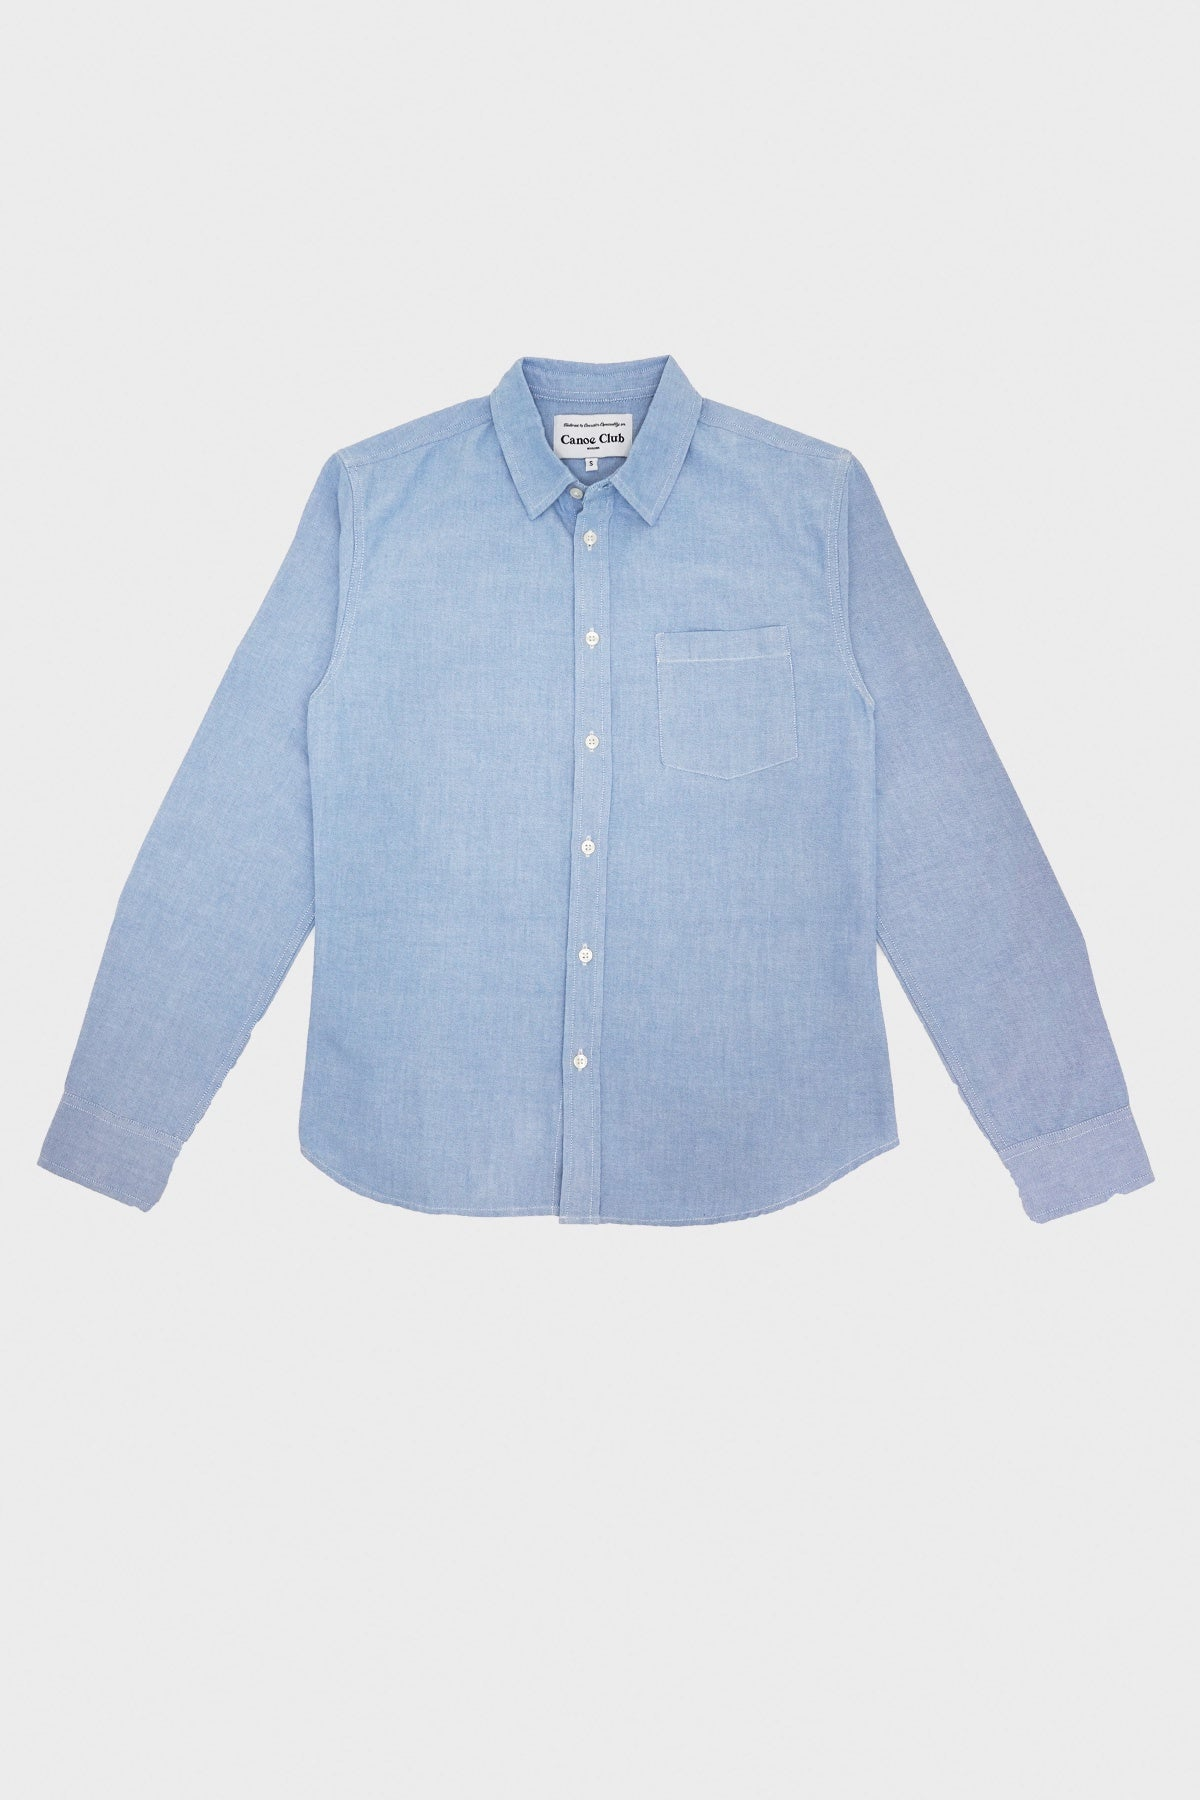 Canoe Club Oxford shirt - Blue